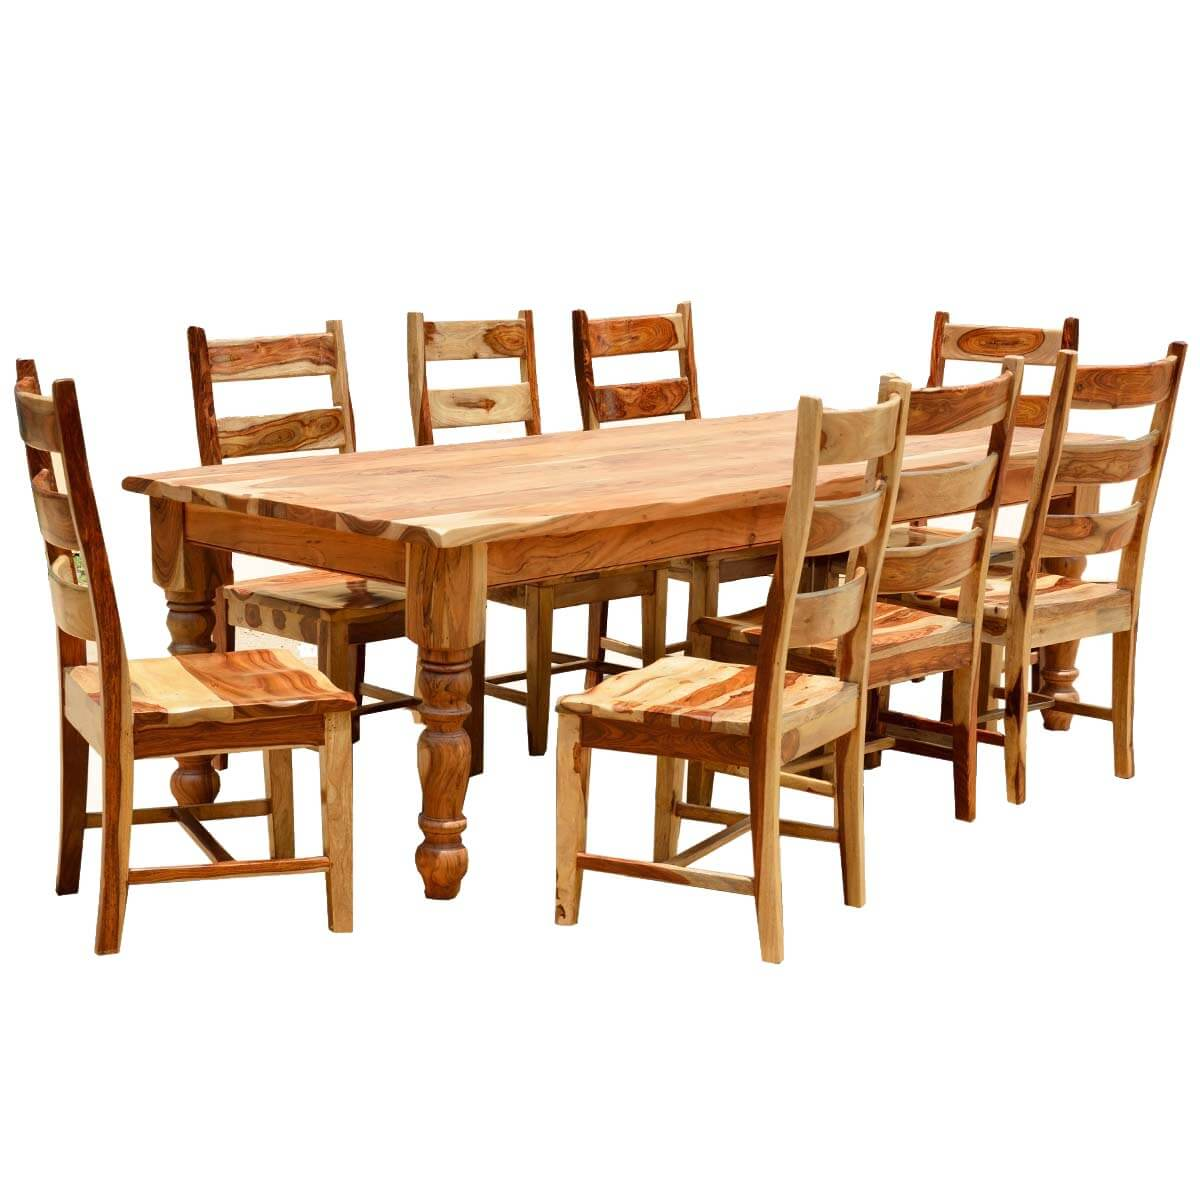 Solid Wood Farmhouse Dining Room Table Chair Set Table Acacia Wood ...